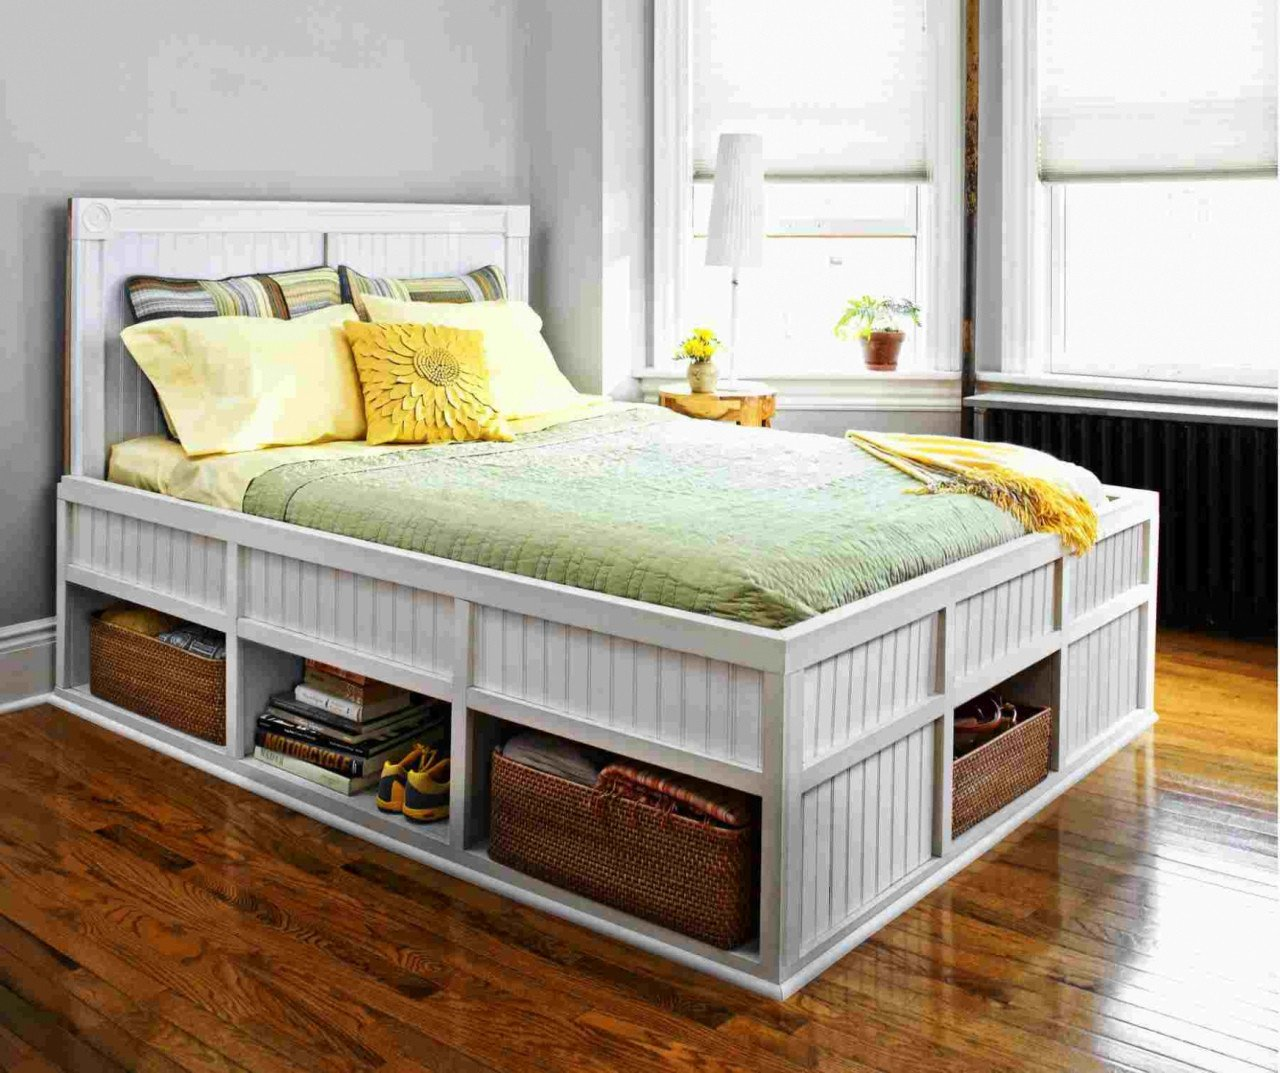 Queen Bedroom Set with Storage Drawers Inspirational Queen Size Bed Frame with Drawers — Procura Home Blog